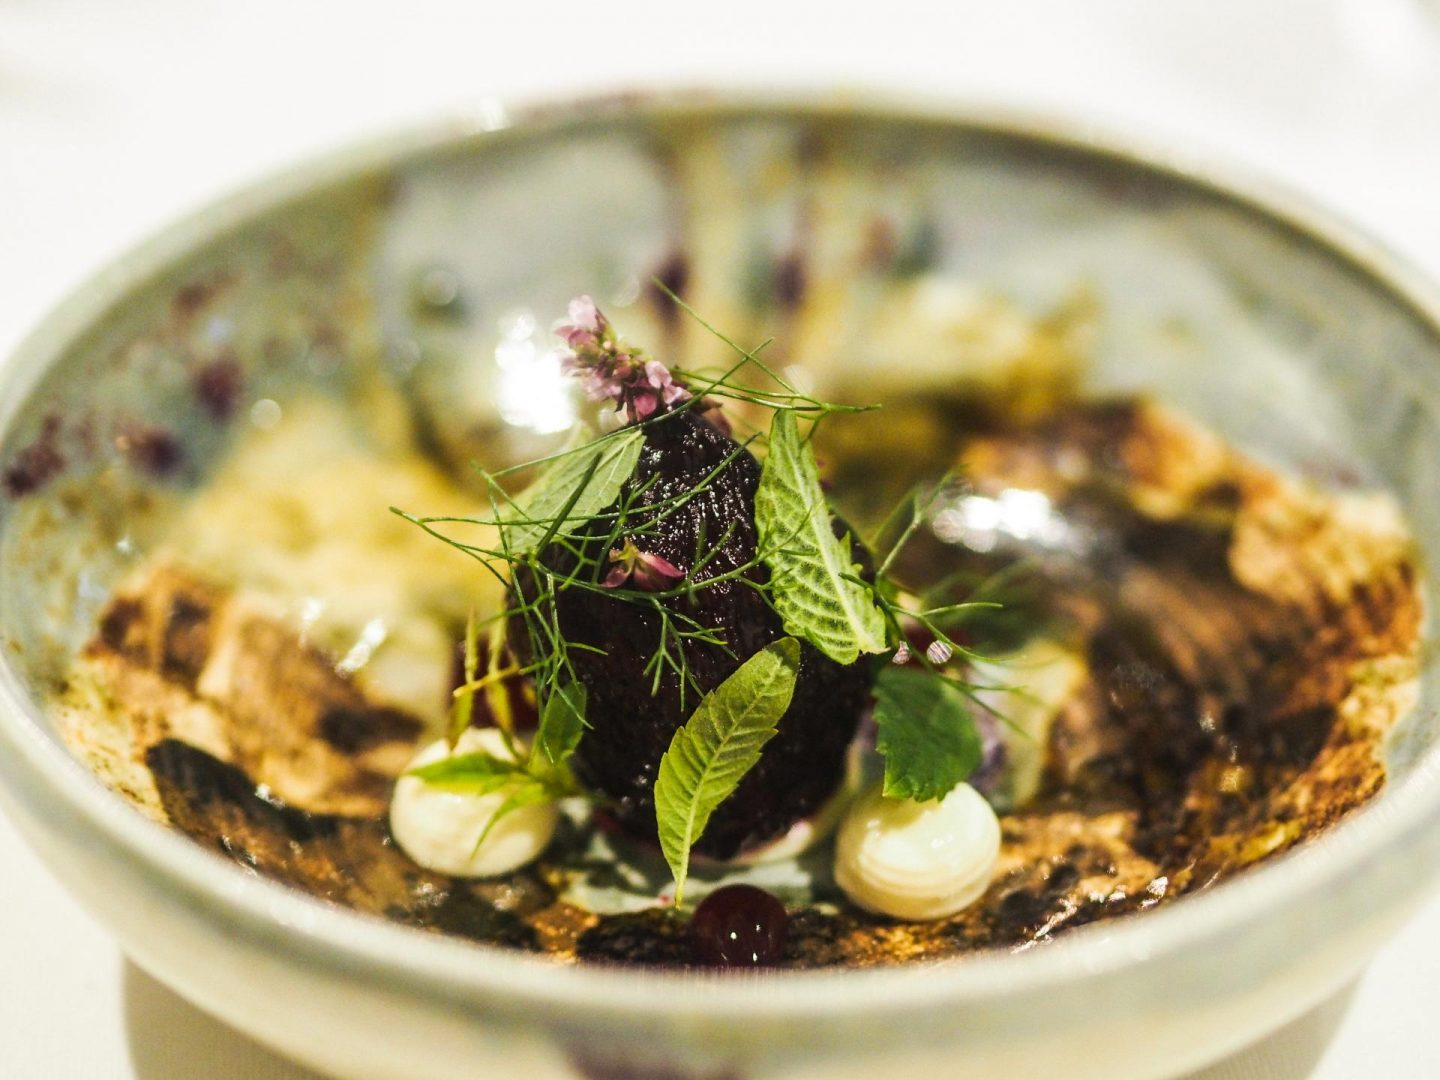 Eight Course Taster Menu at Hipping Hall, Luxury Hotel Review - Rachel Nicole UK Travel Blogger